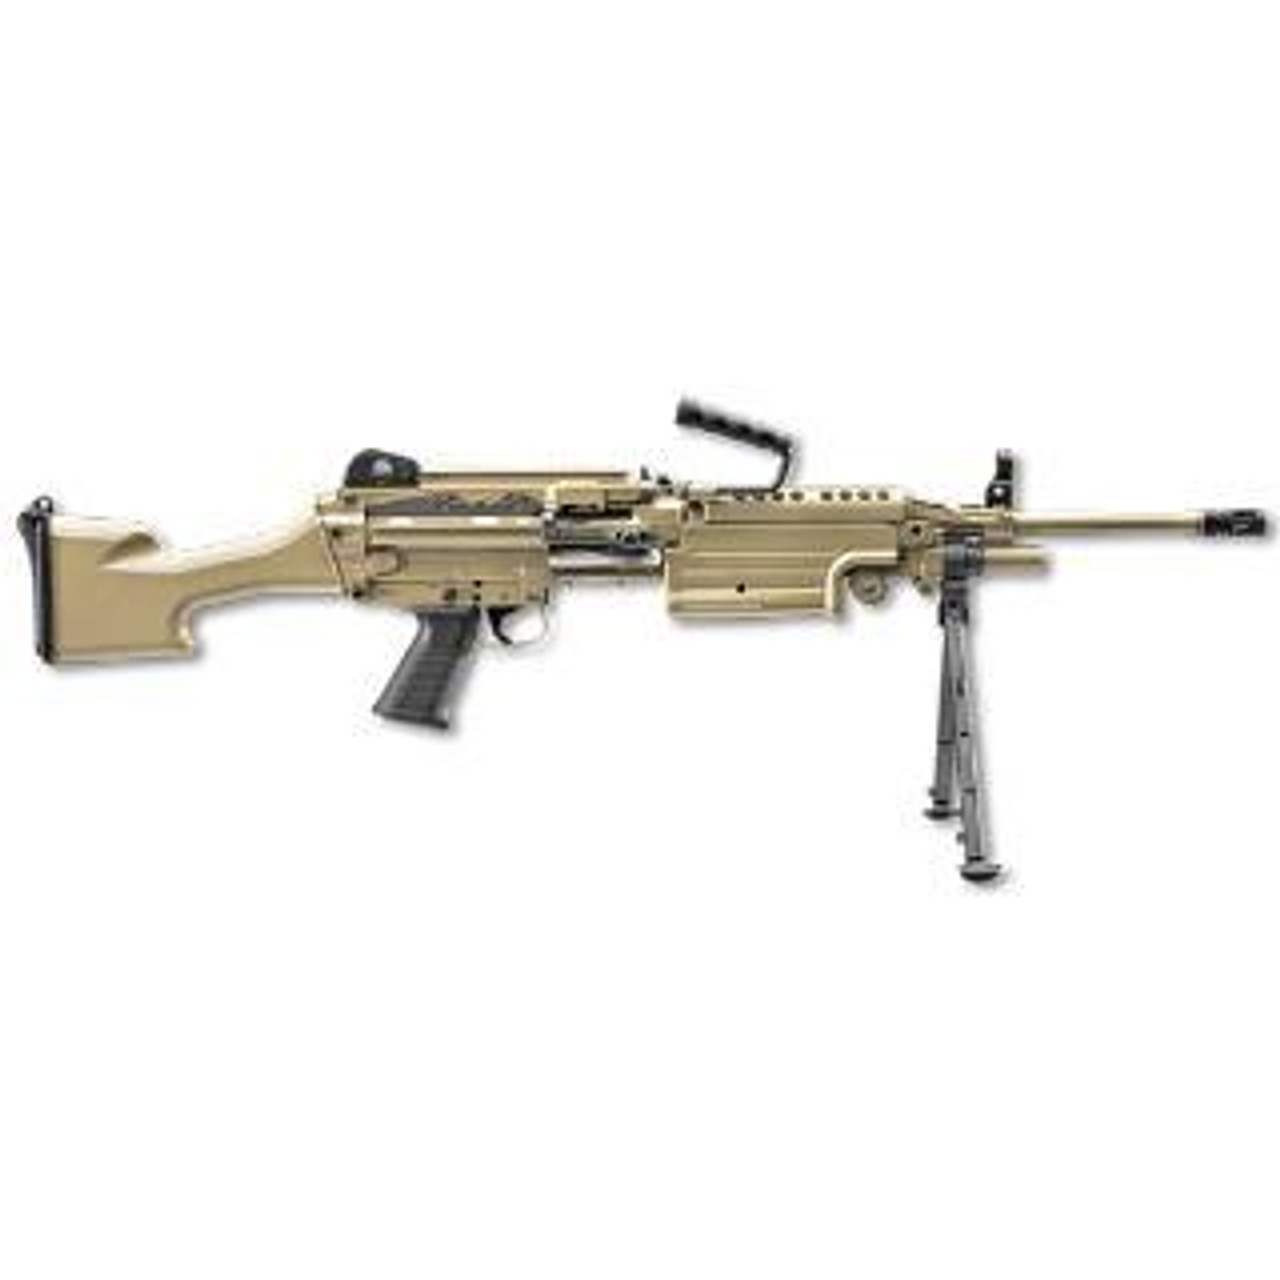 FNH M249S SAW- CALIFORNIA LEGAL- 5.56- FDE